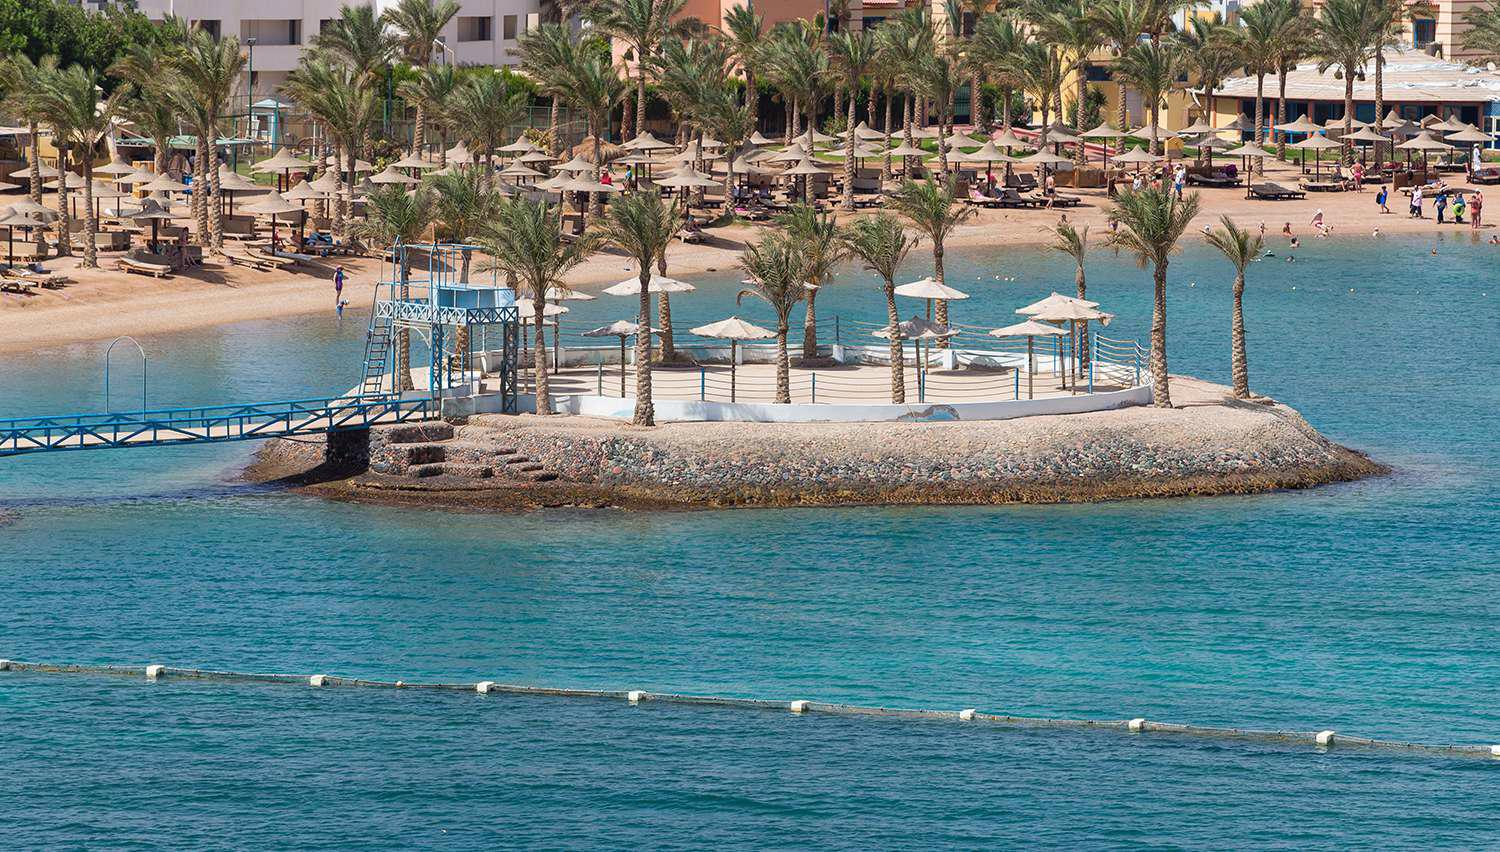 MIRAGE BAY RESORT & AQUA PARK